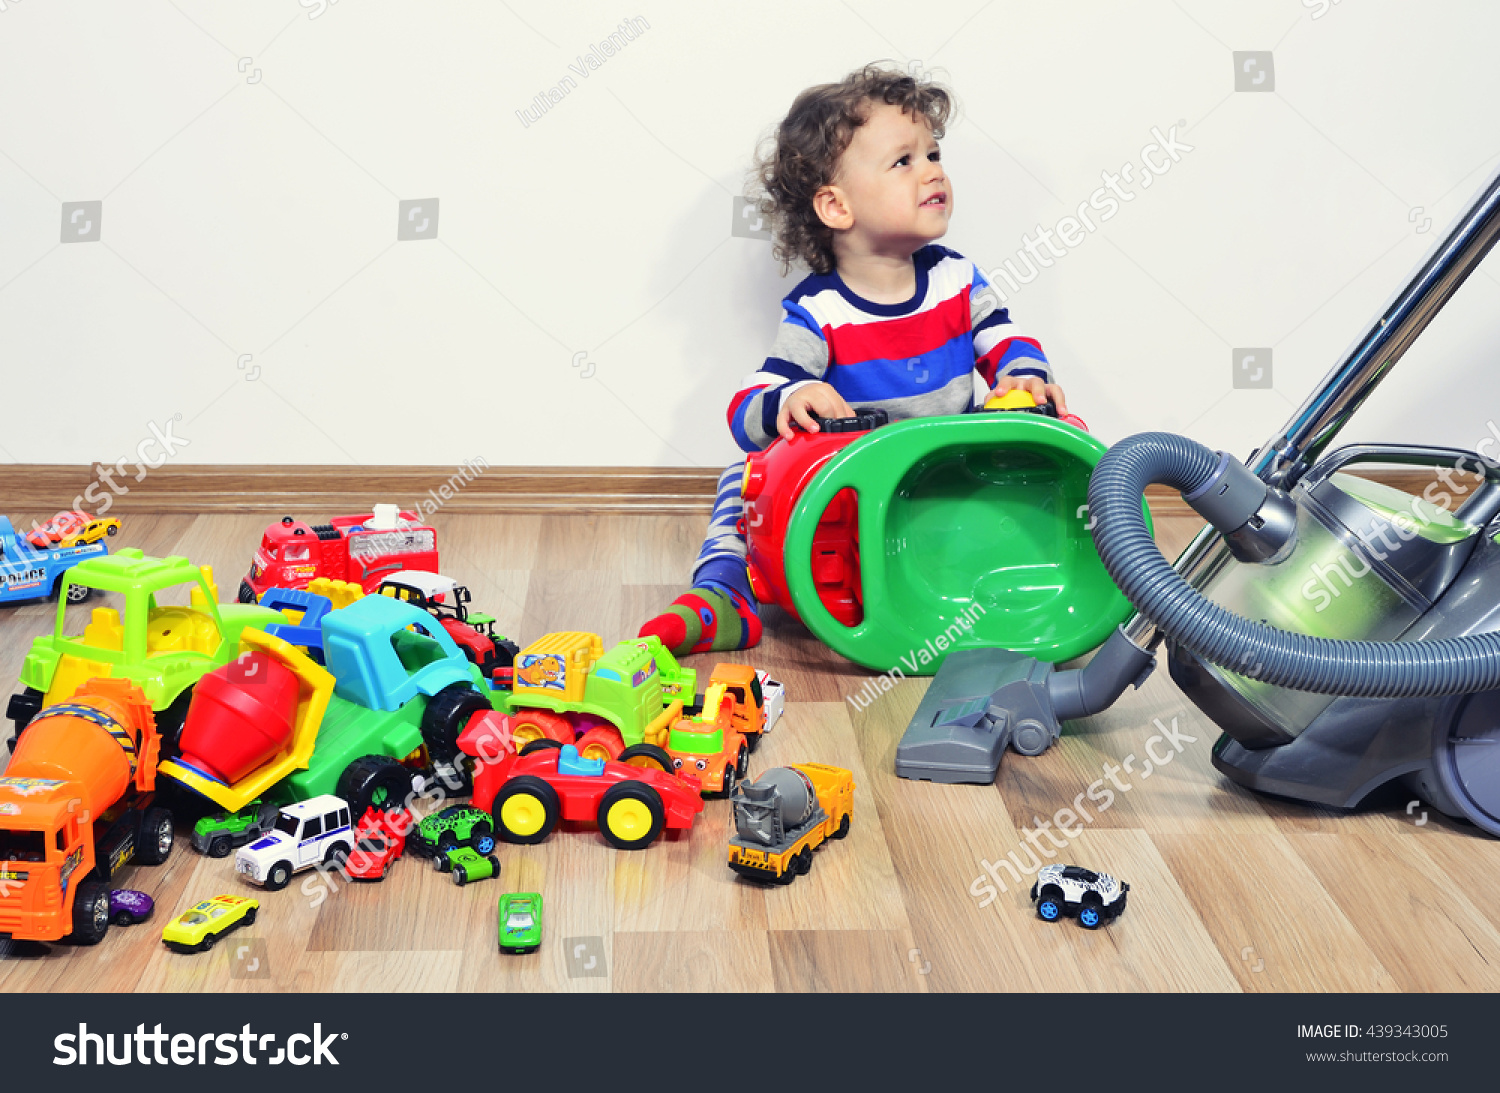 Cleaning Messy Room mother cleaning messy room full toys stock photo 439343005